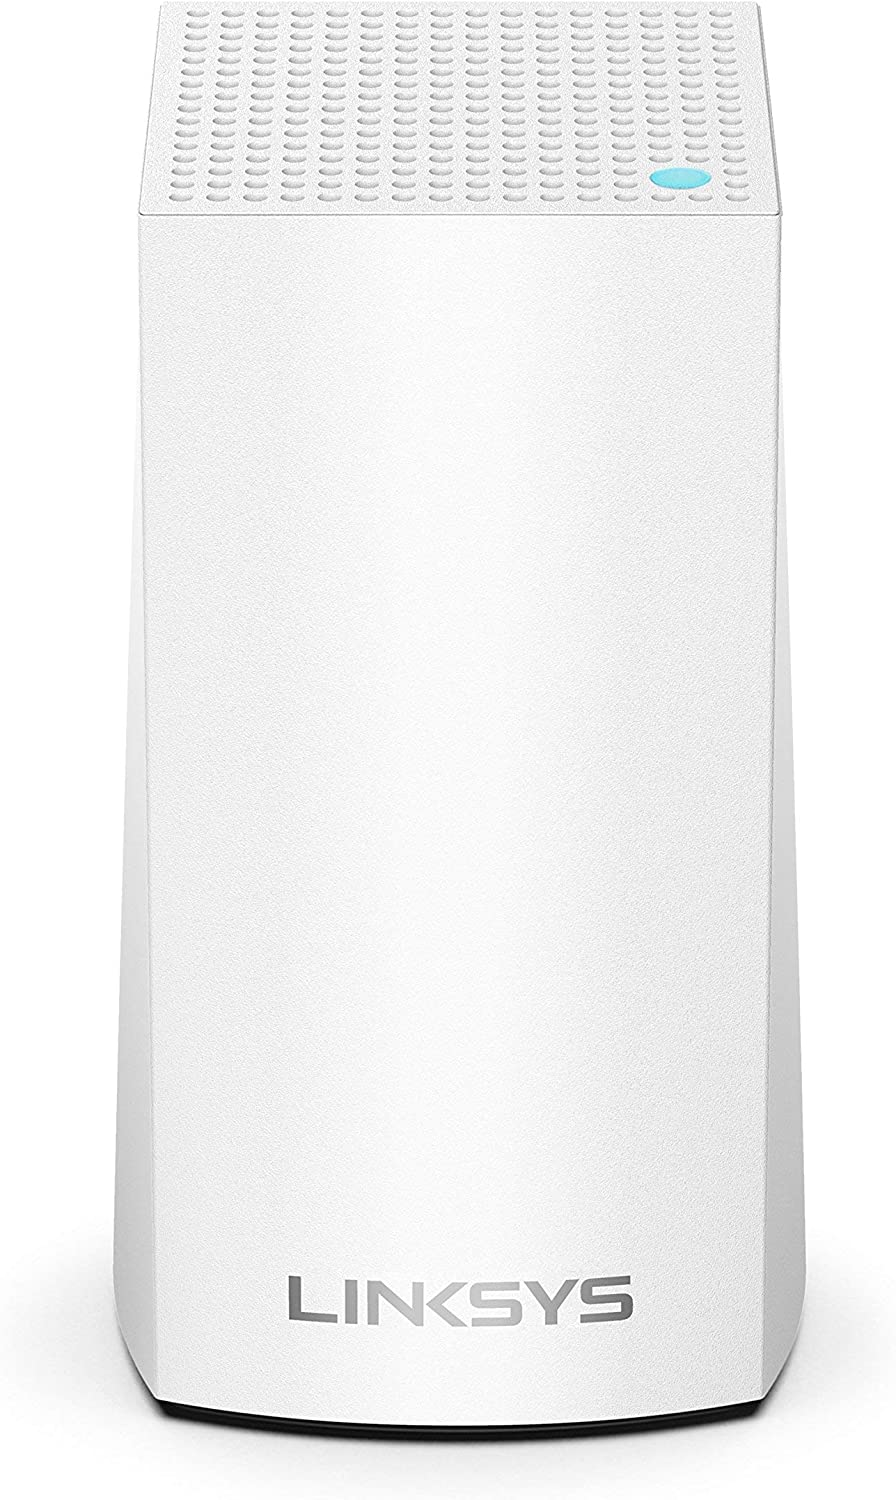 Linksys Velop Whole Home WiFi Router White Dual-Band Series, 1500 Sq Ft Coverage, 1 Pack Expandable! (AC1200) (Renewed)